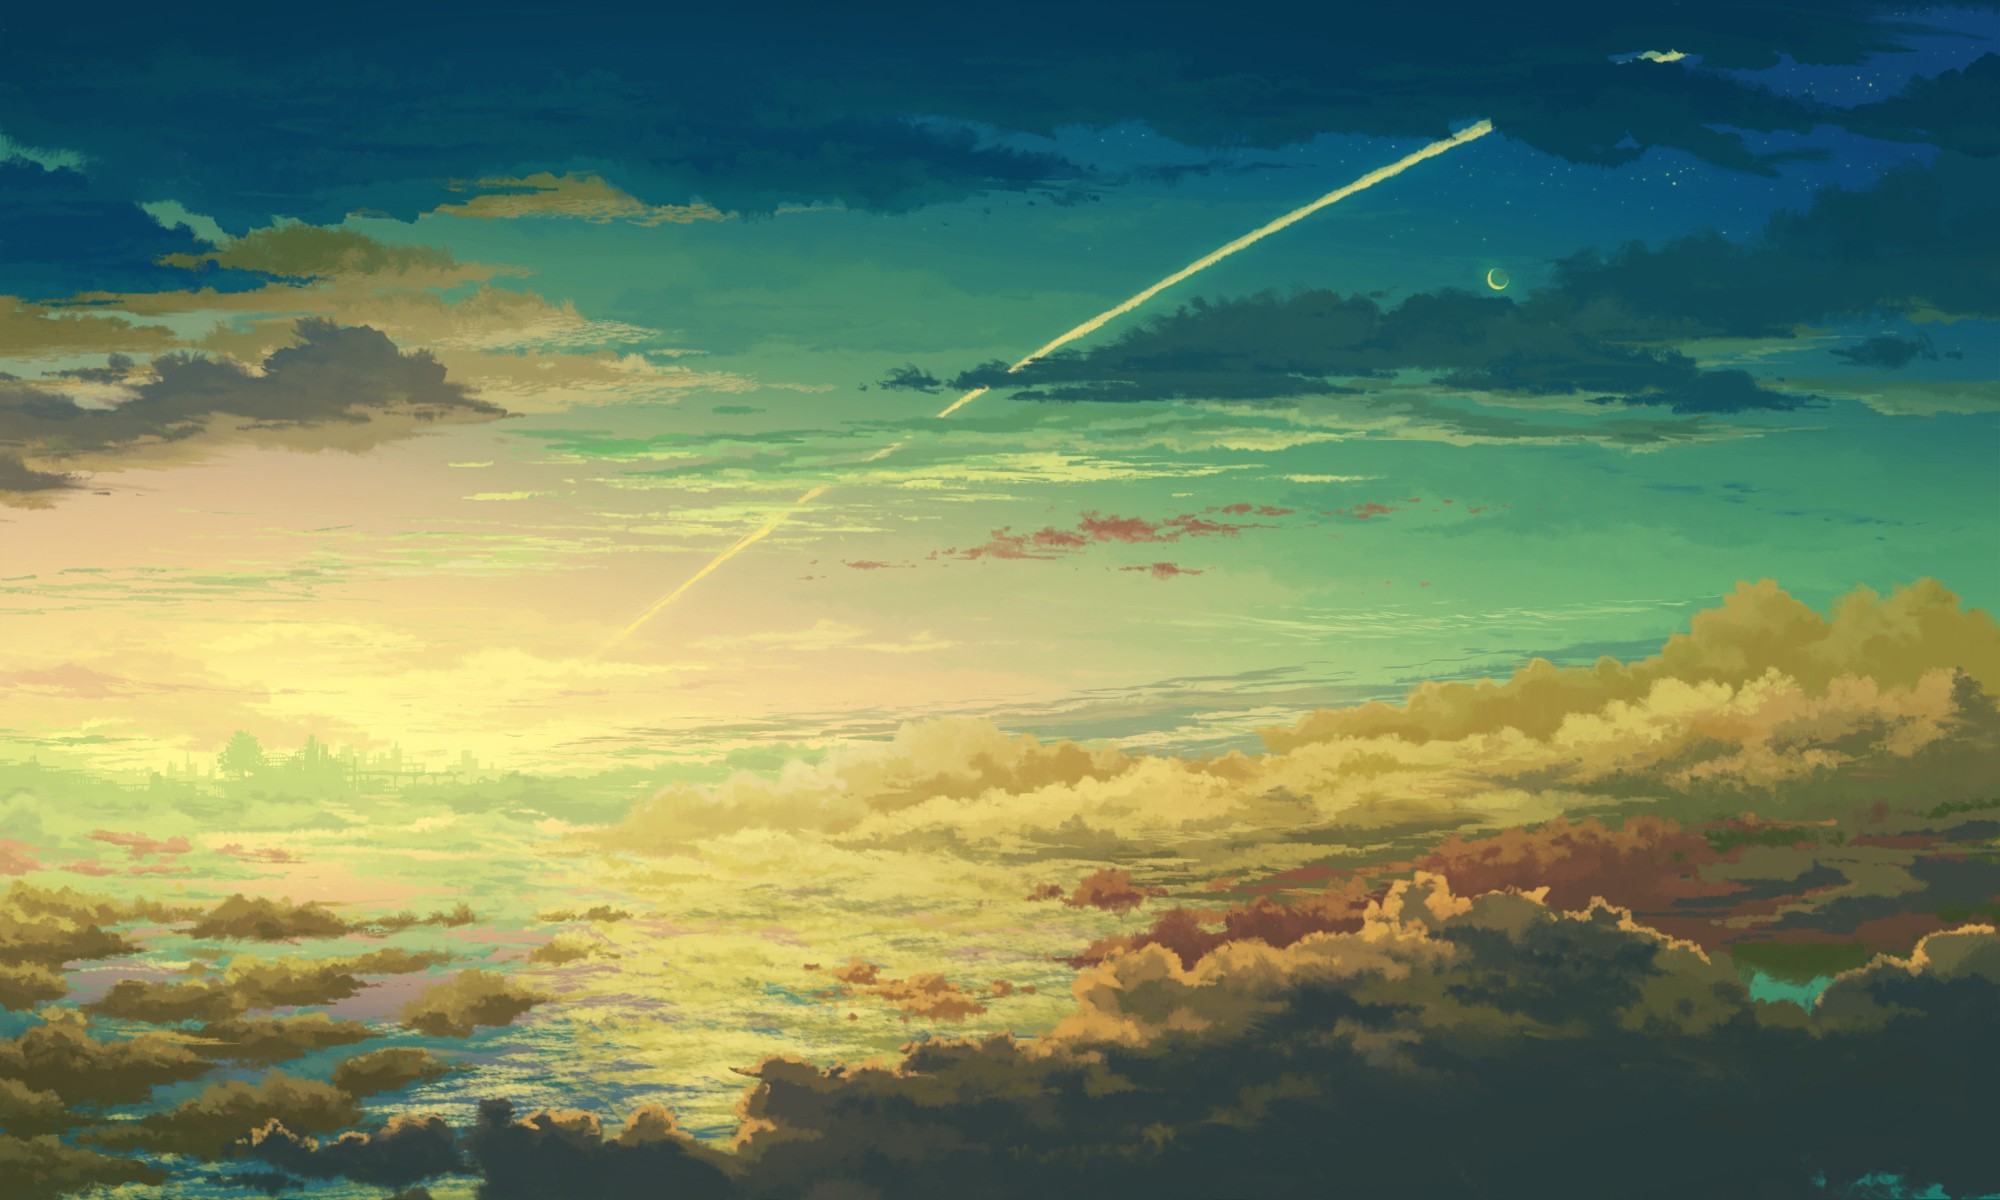 Retro Wallpaper Iphone Clouds Space Anime Wallpapers Hd Desktop And Mobile